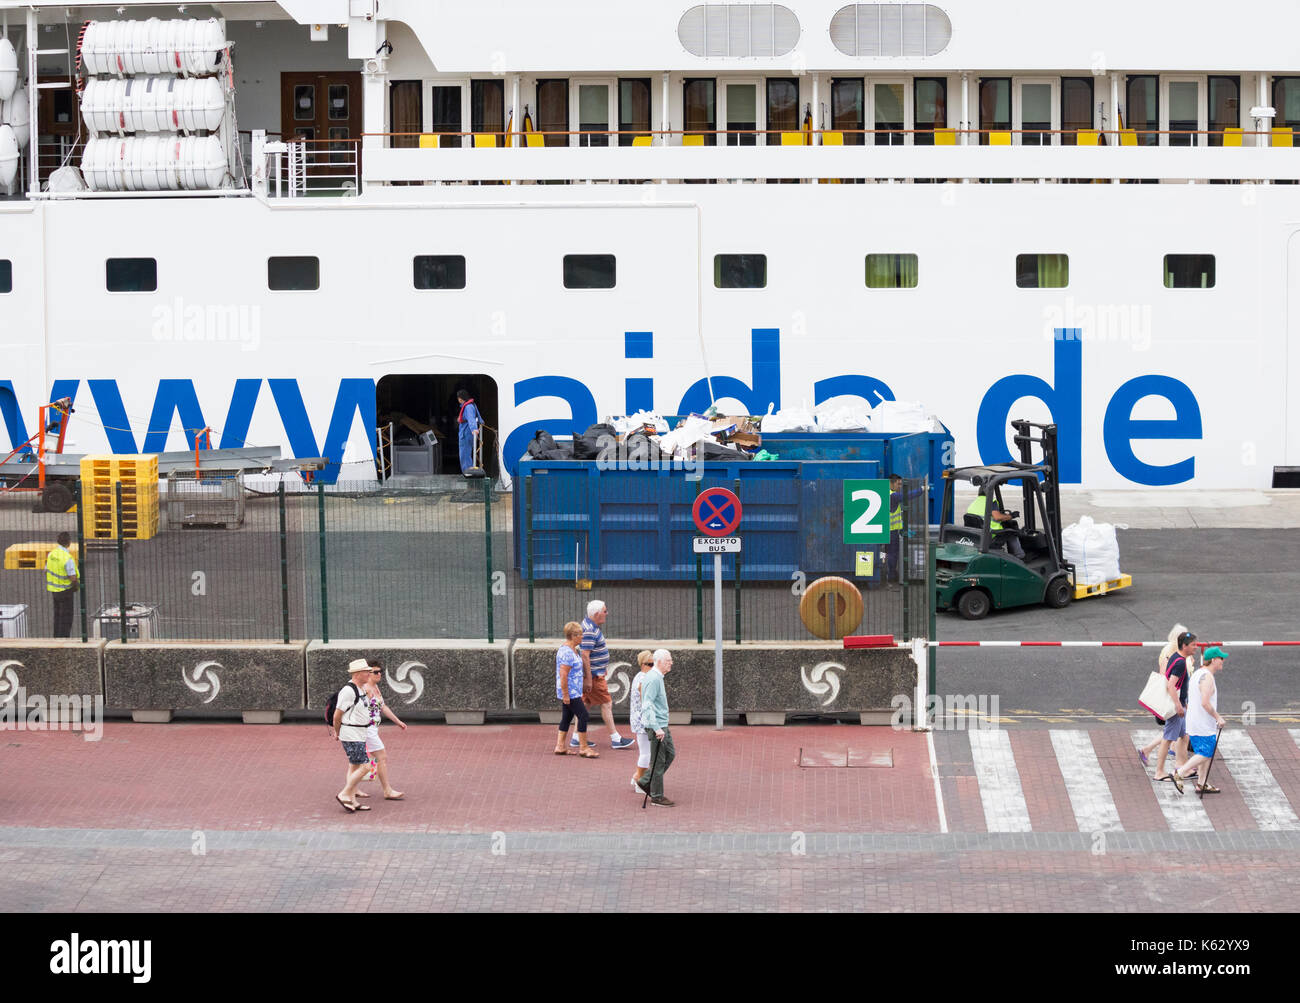 Rubbish from large cruise ship being loaded into containers in port as passengers visit local sites. - Stock Image